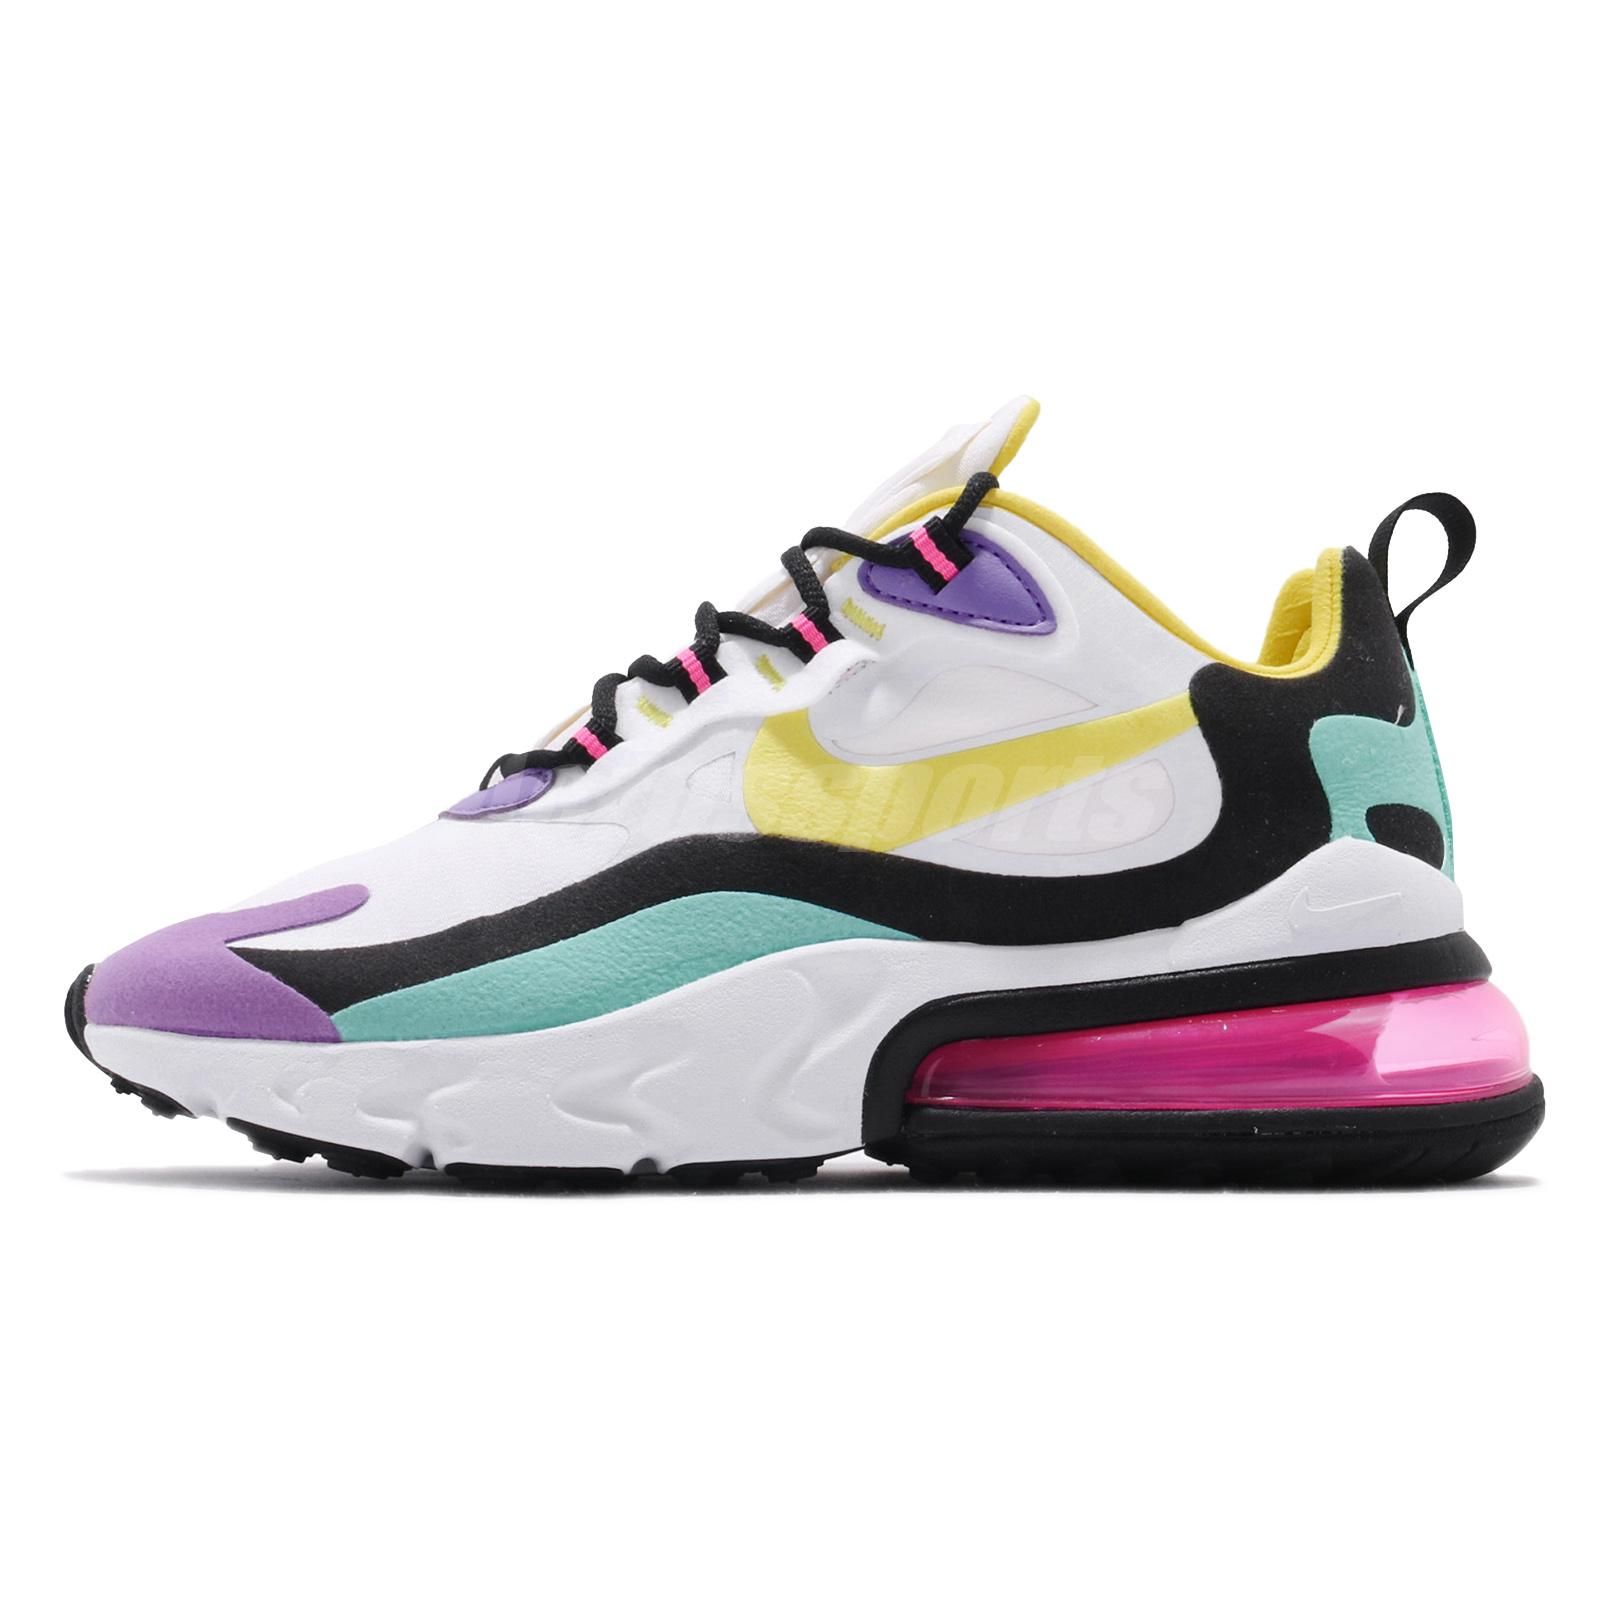 air max 270 pink and yellow